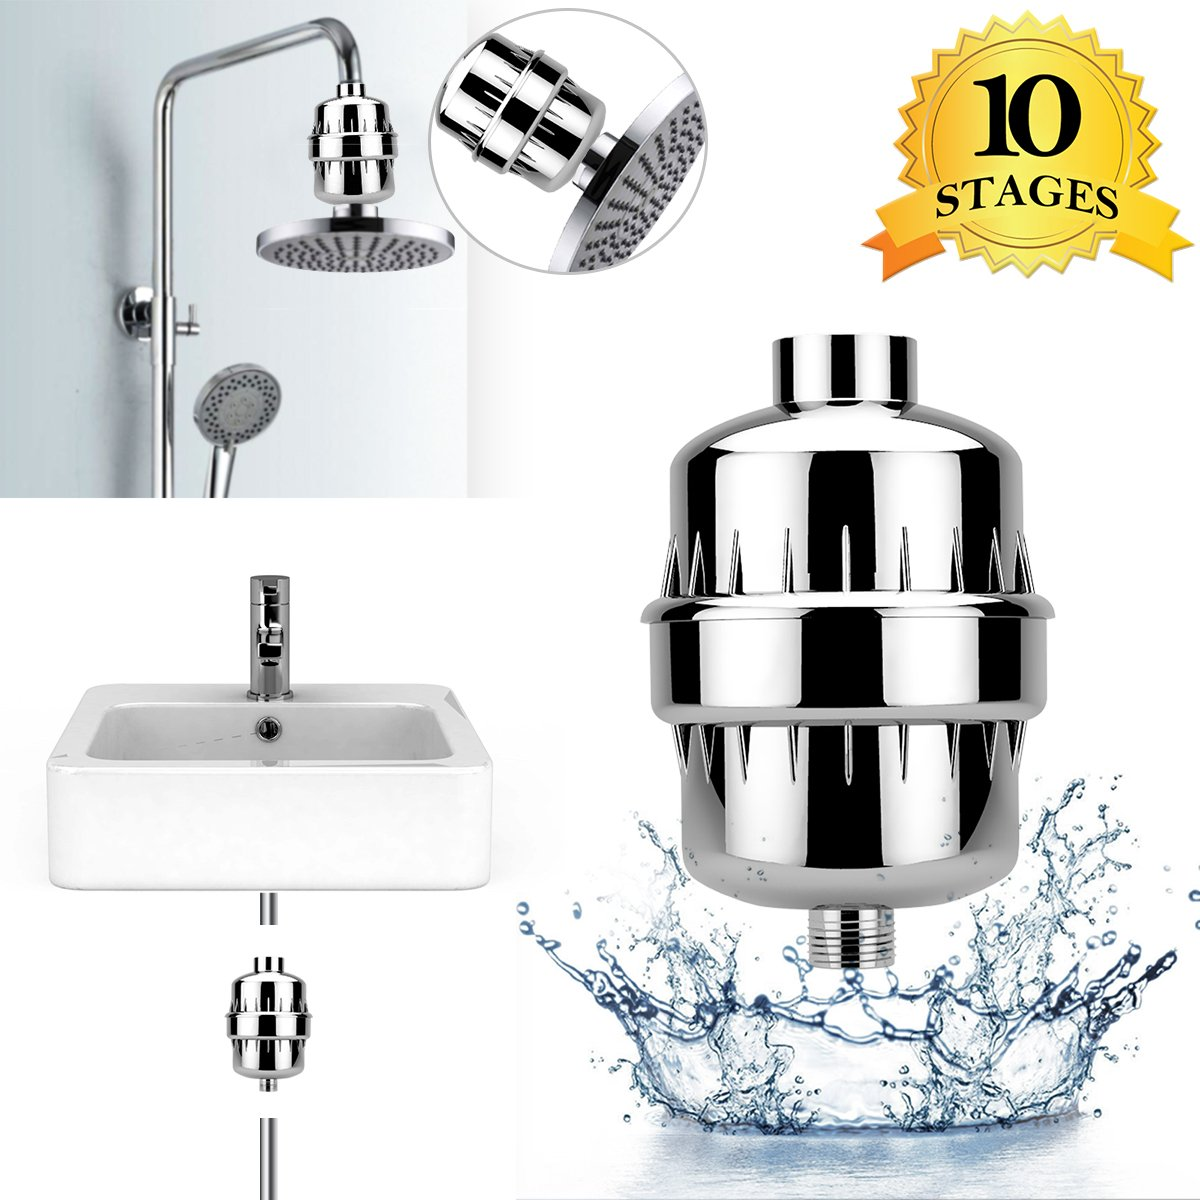 Shower Filter, WeGuard 10-Stage Universal Shower Head Water Filter with 2 Cartridges for Hard Water - Removing Chlorine Fluoride Heavy Metal - For All Types of Shower